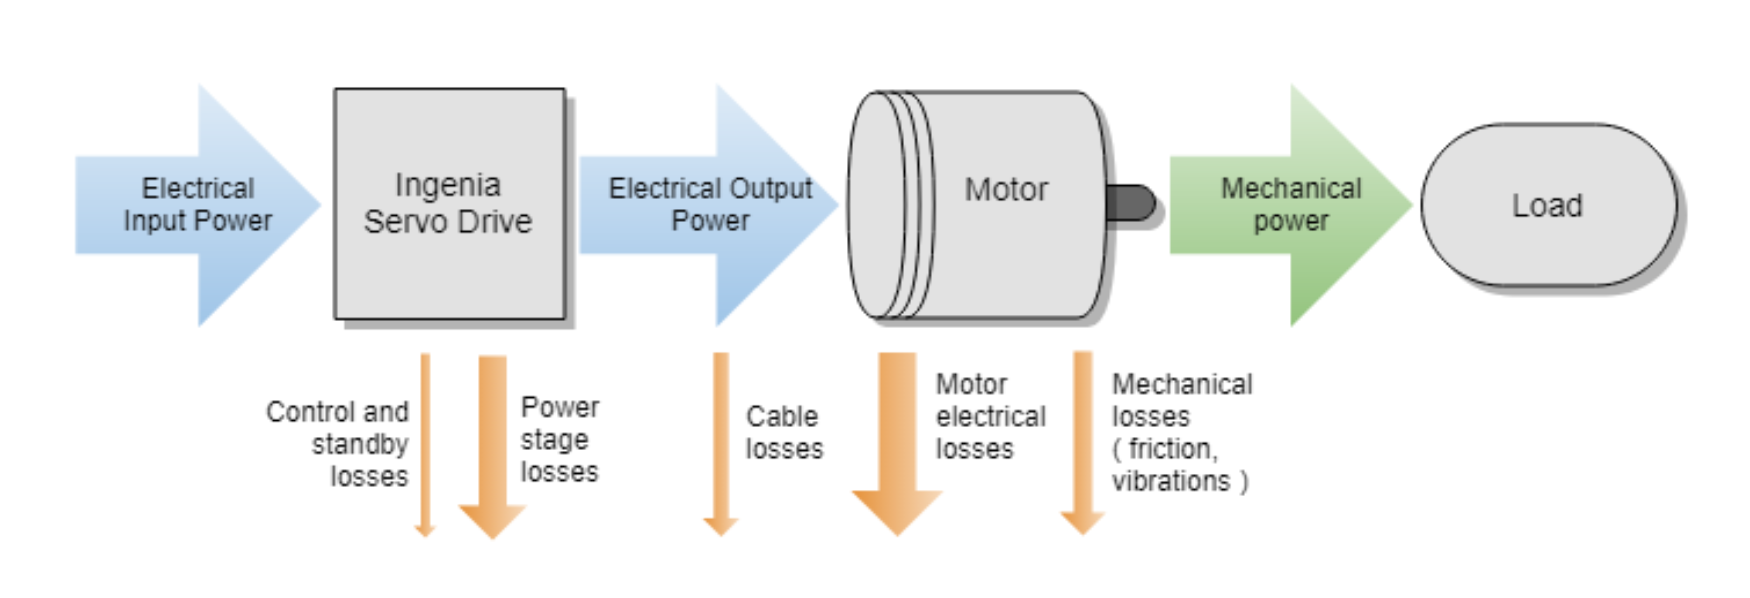 Servo drive power flow and losses